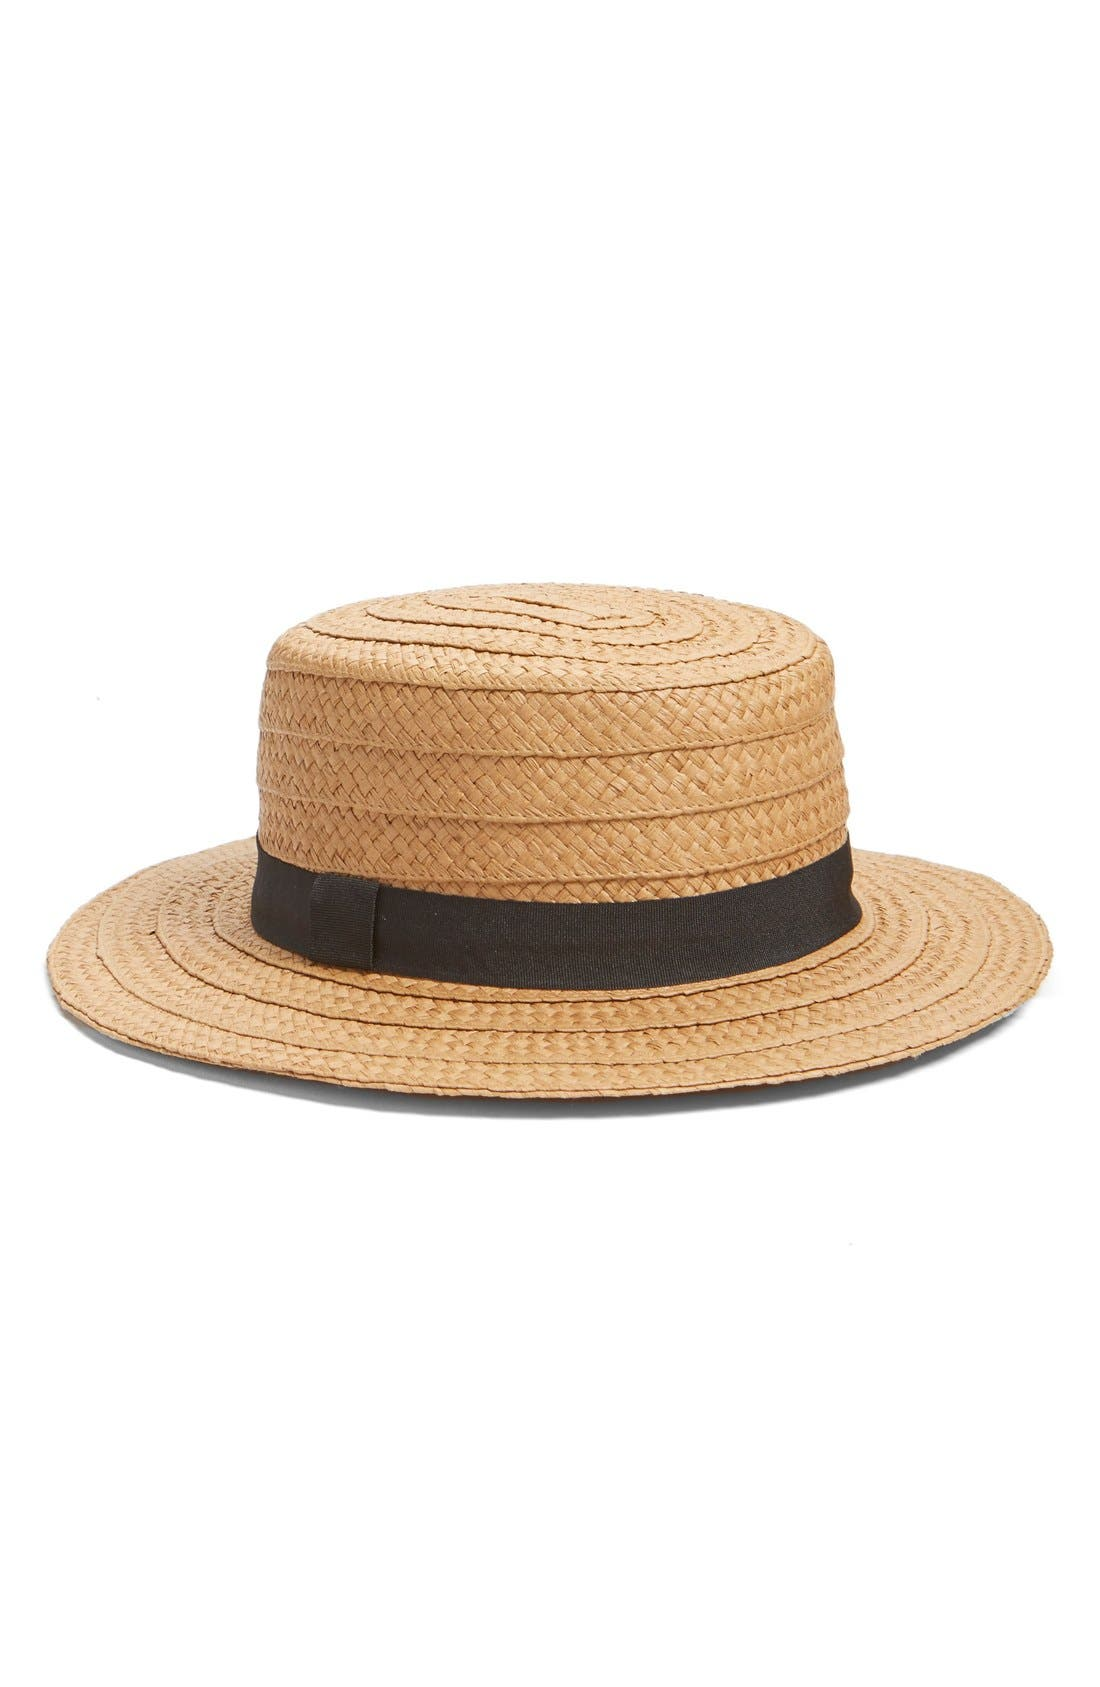 Treasure & Bond Straw Boater Hat